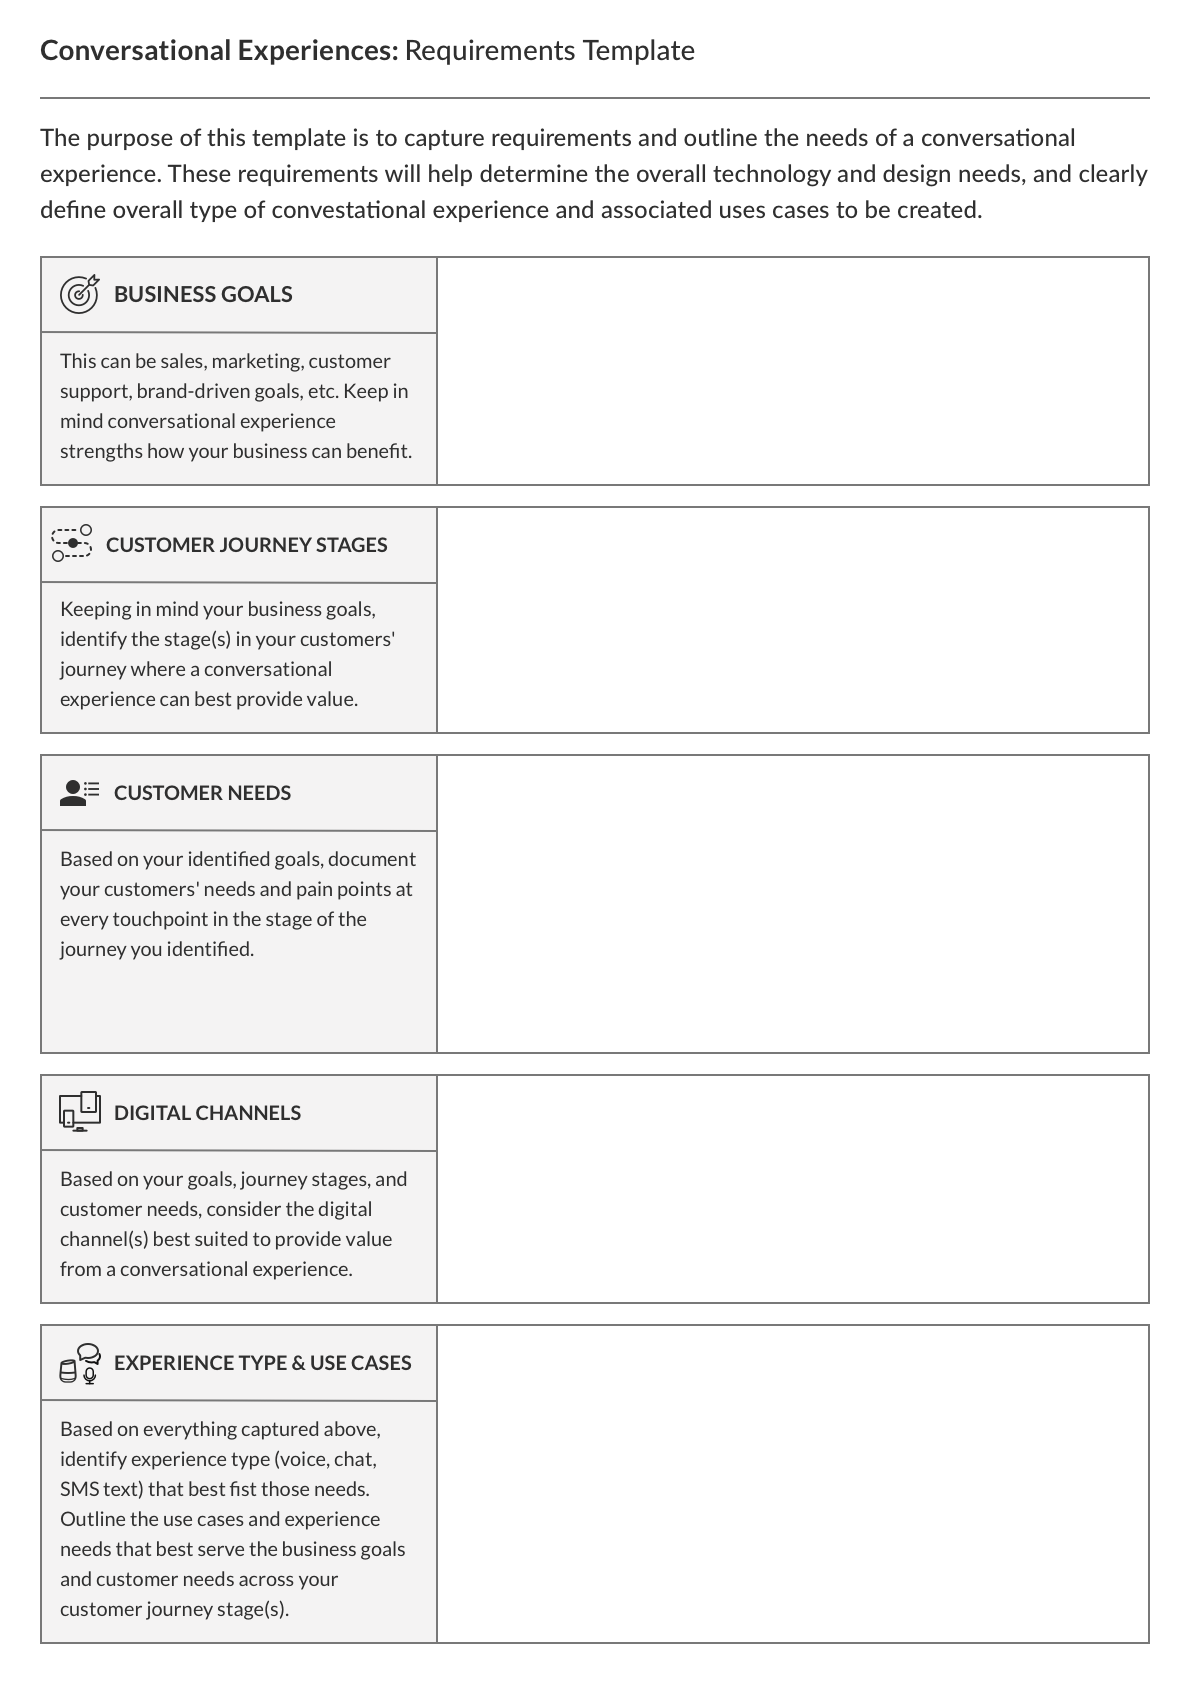 Conversational Experience: Requirements Template